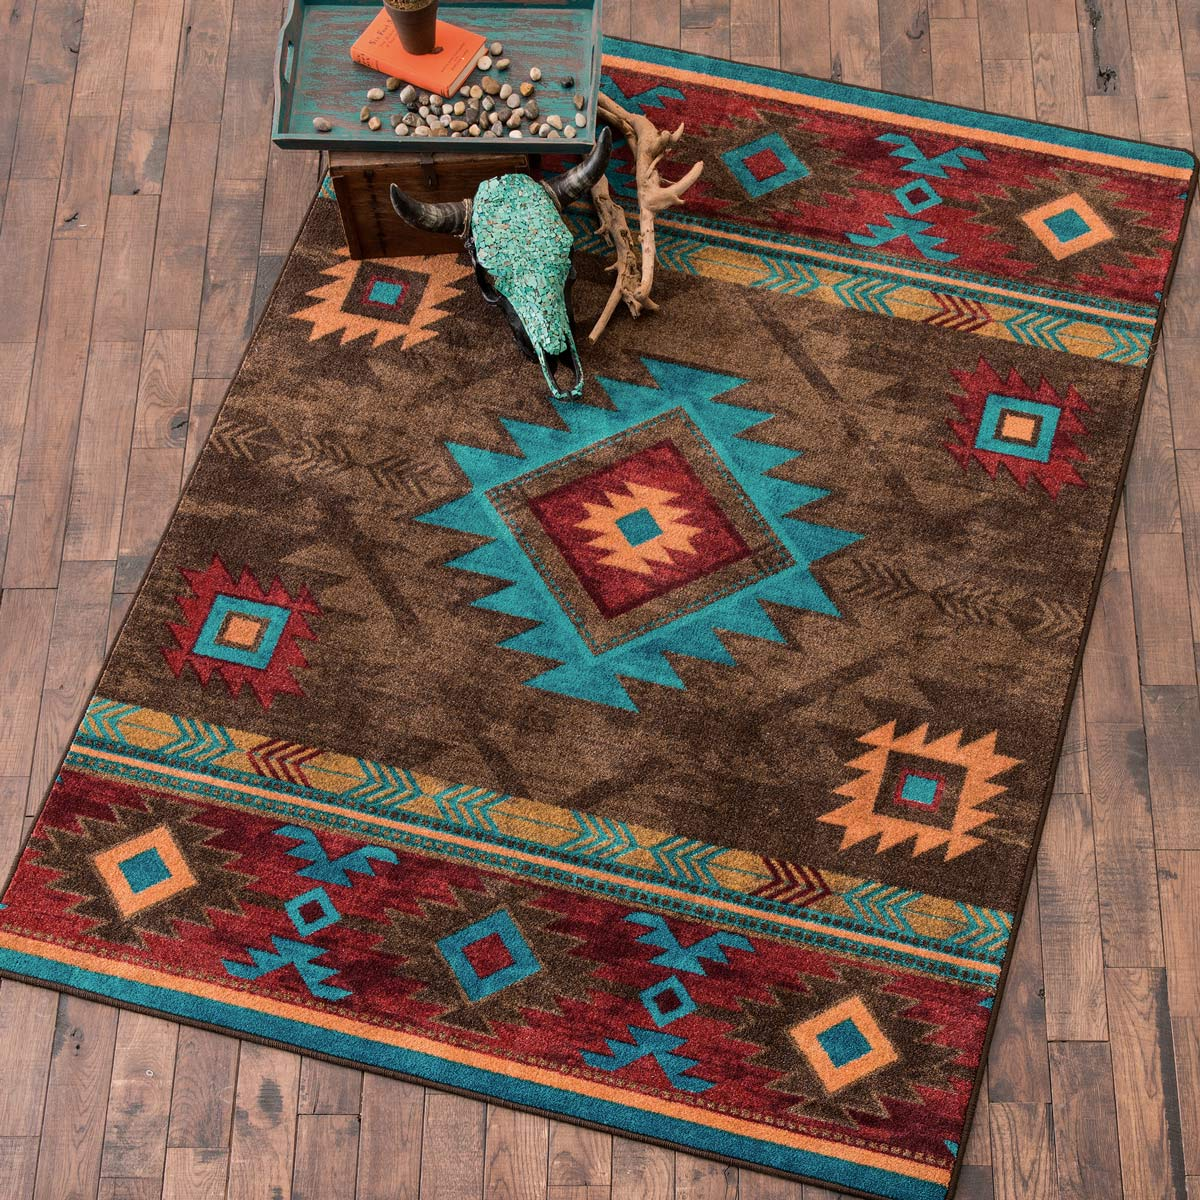 southwest rugs: 3 x 4 whiskey river turquoise rug|lone star western decor KCJBSAB